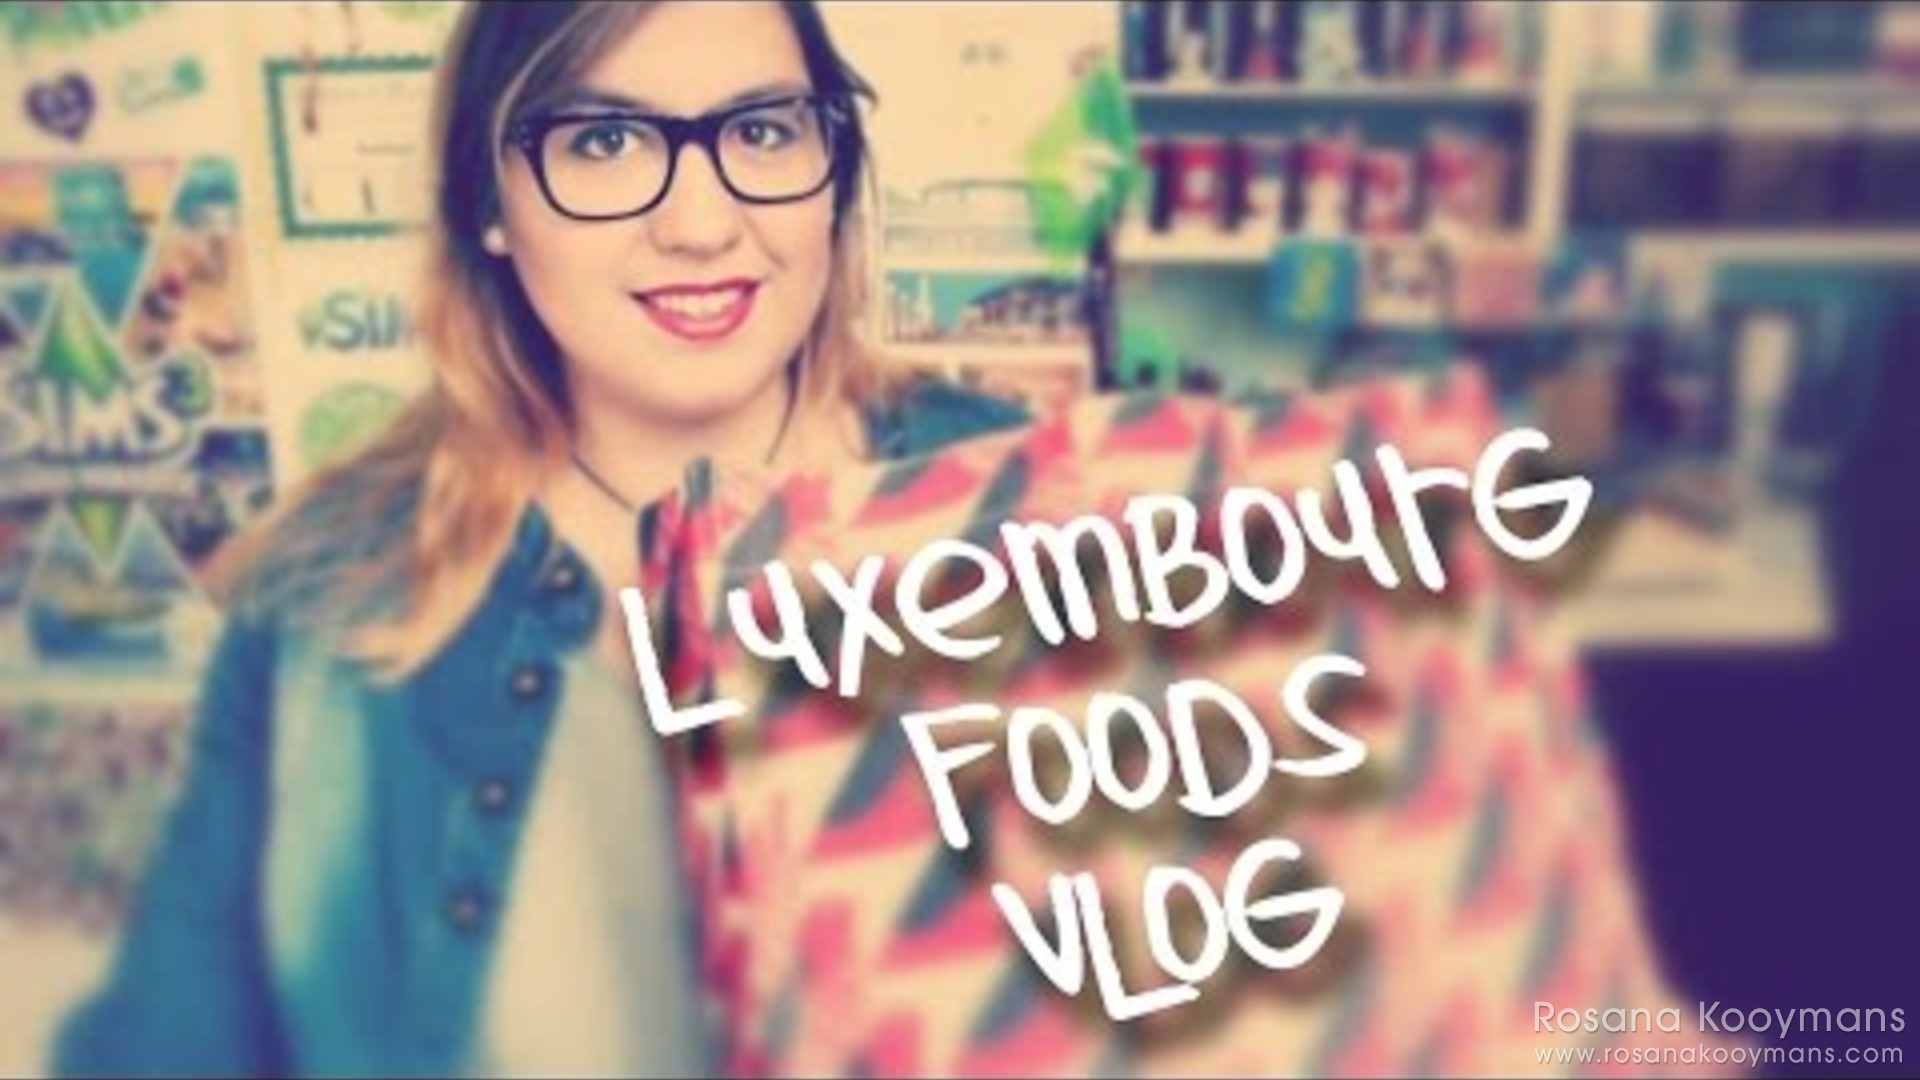 Luxembourg Foods Vlog